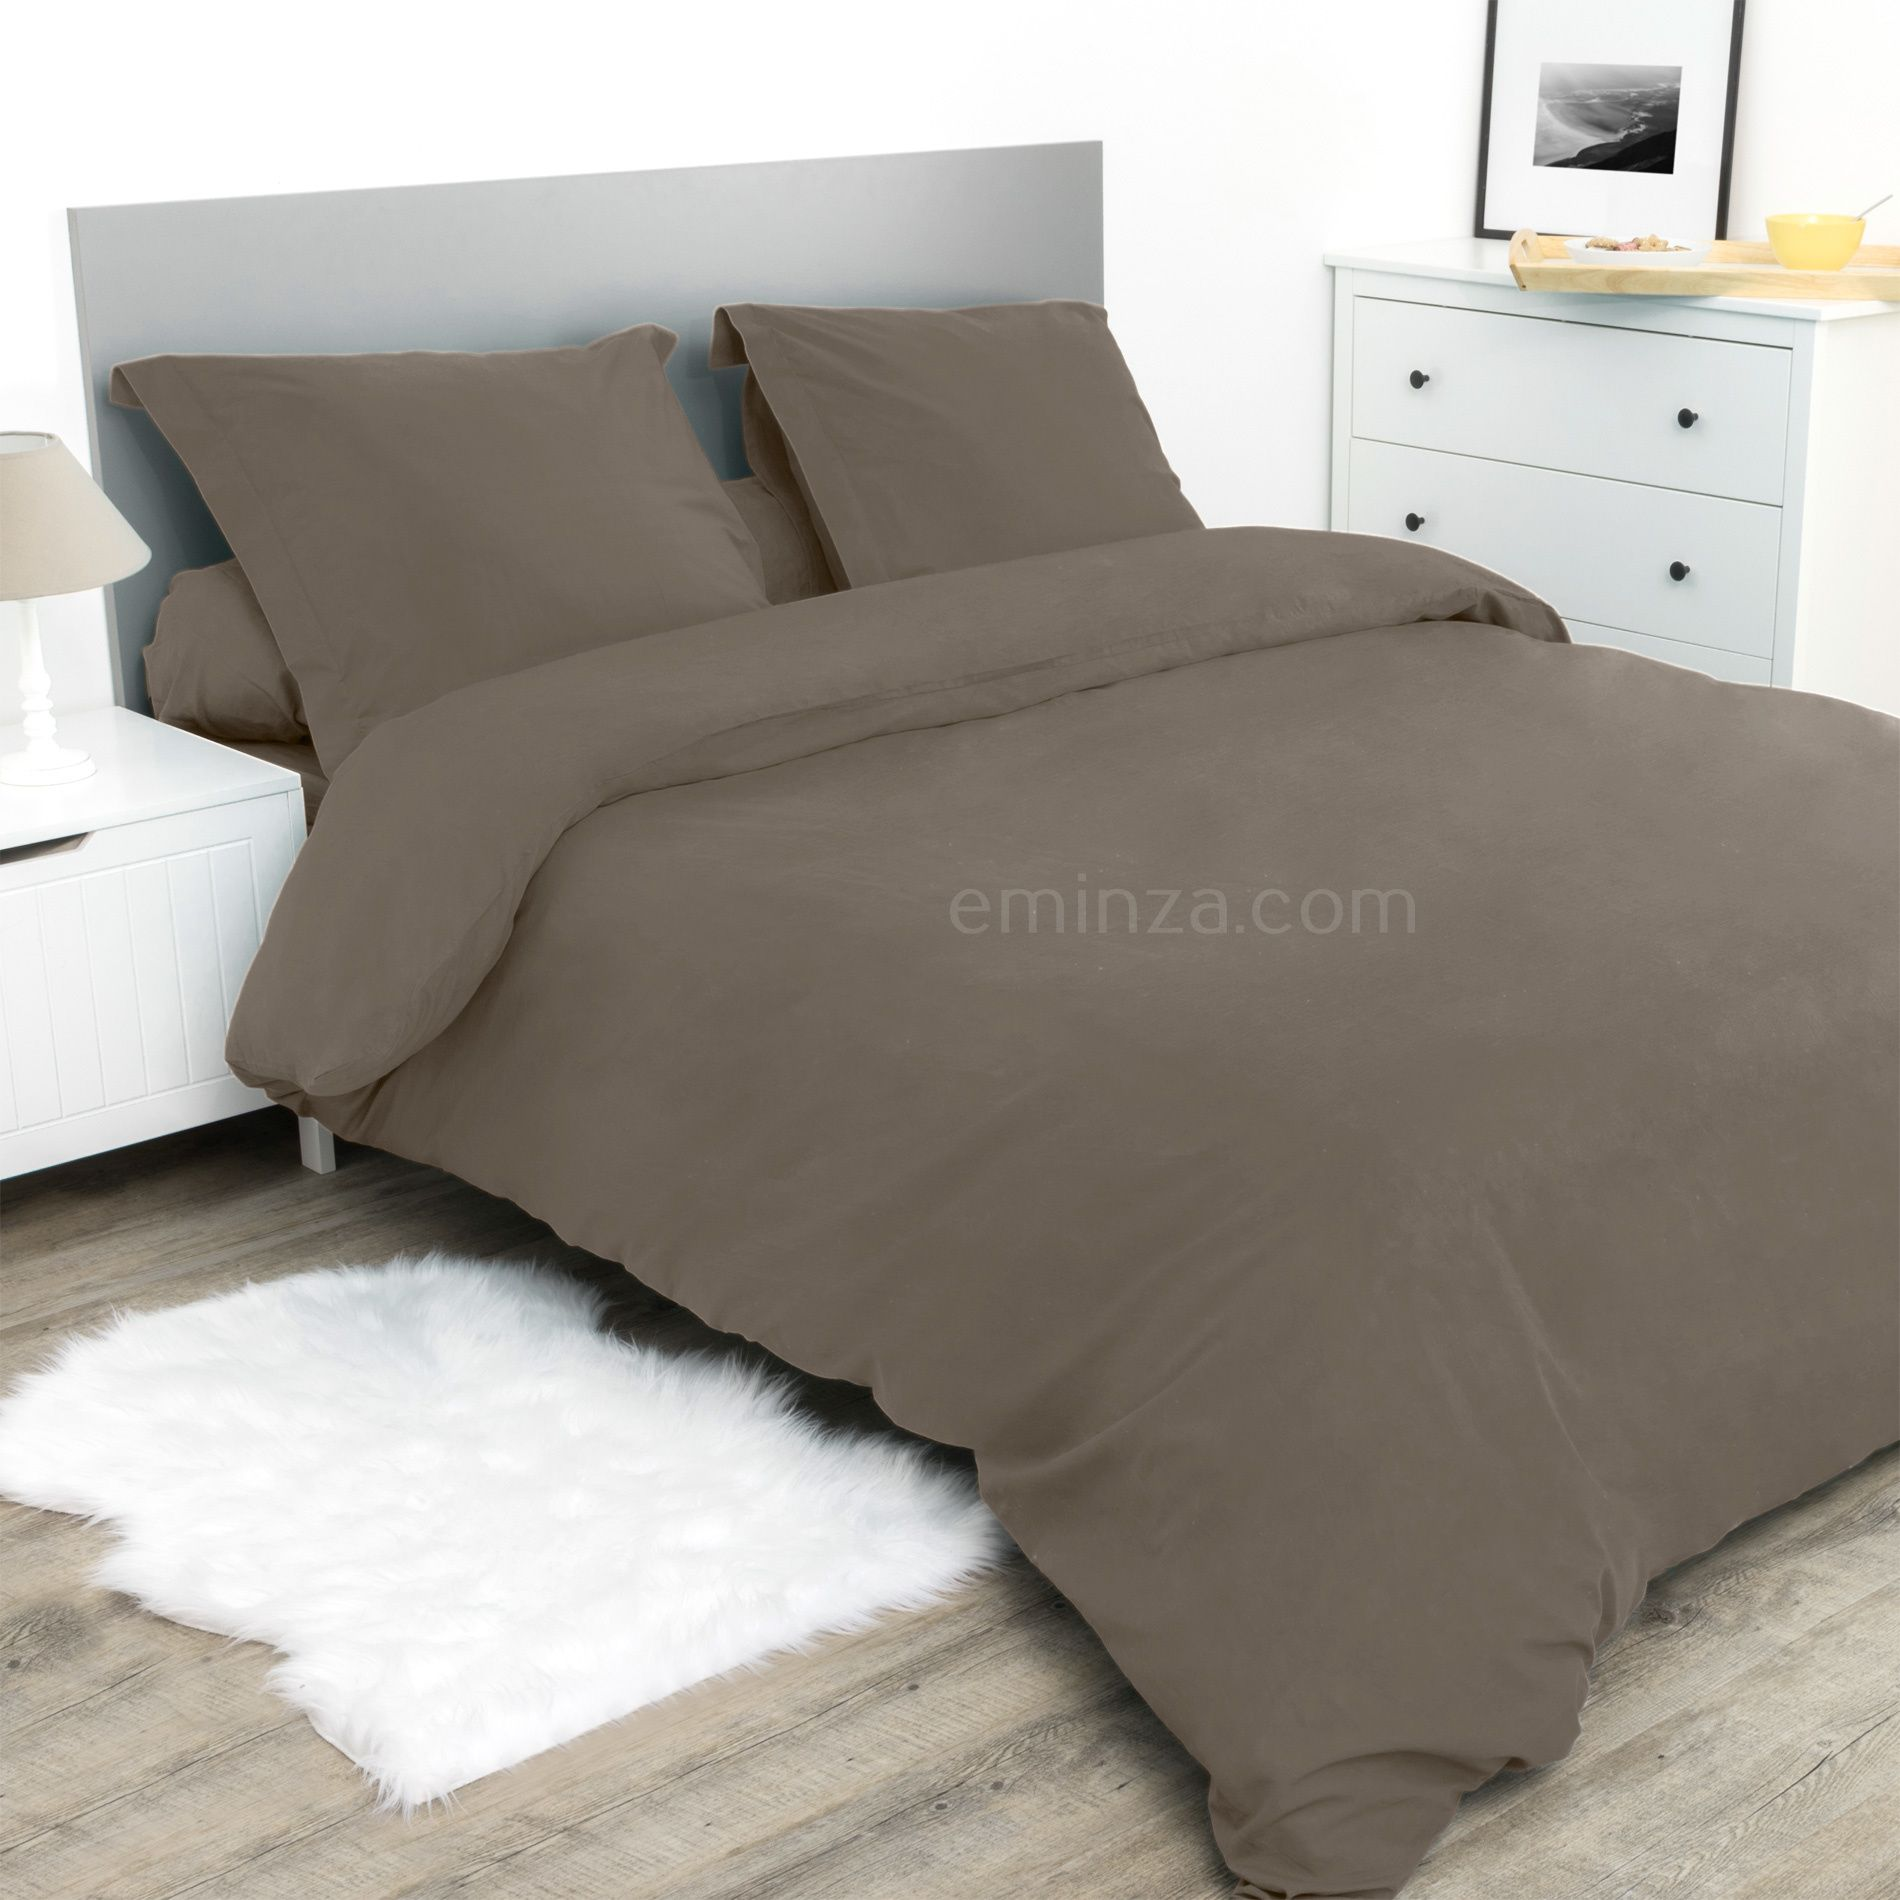 drap housse 160 cm confort taupe drap housse eminza. Black Bedroom Furniture Sets. Home Design Ideas